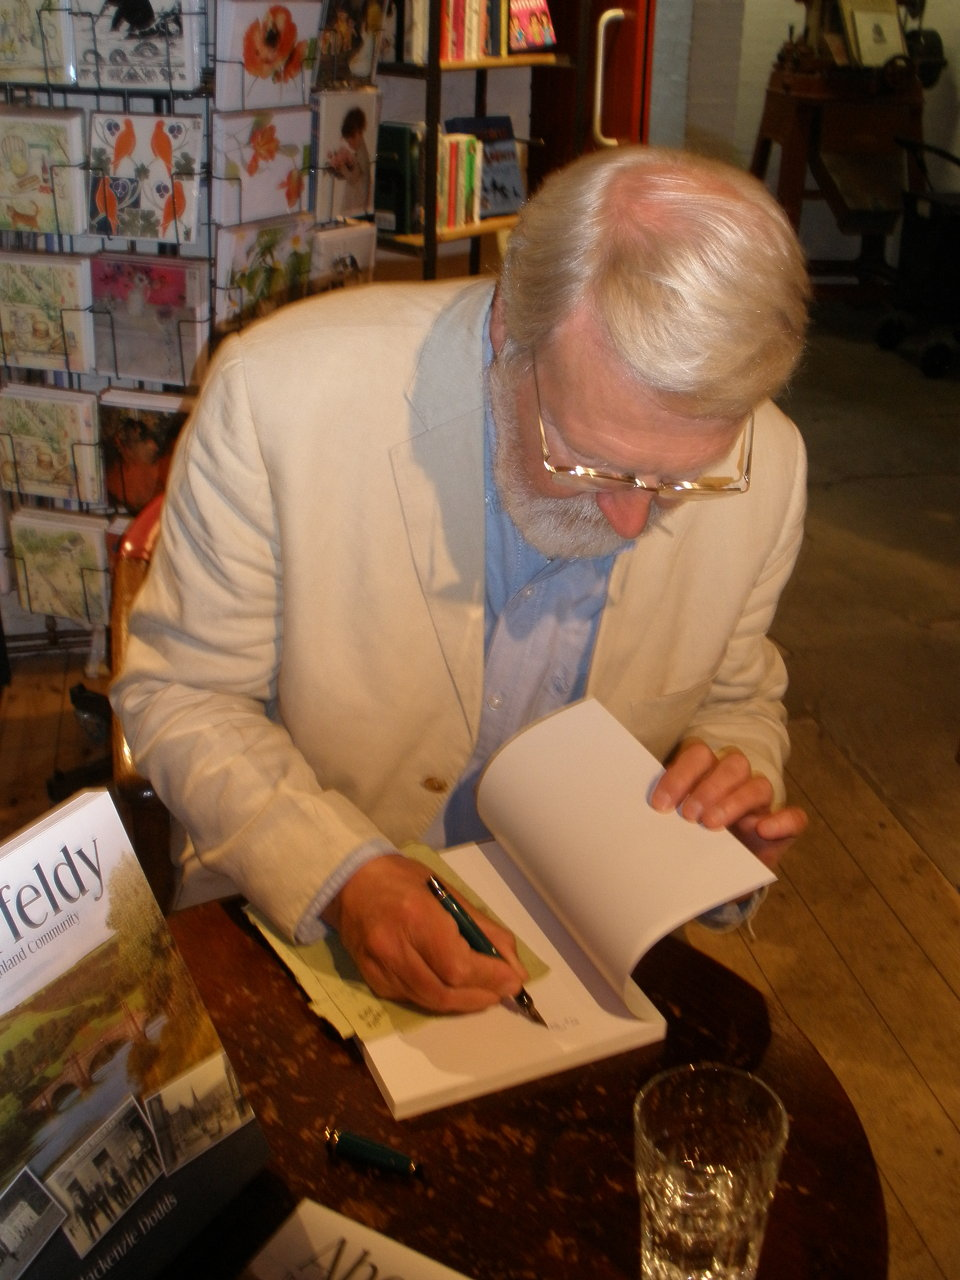 Ruary signing books 9-7-10